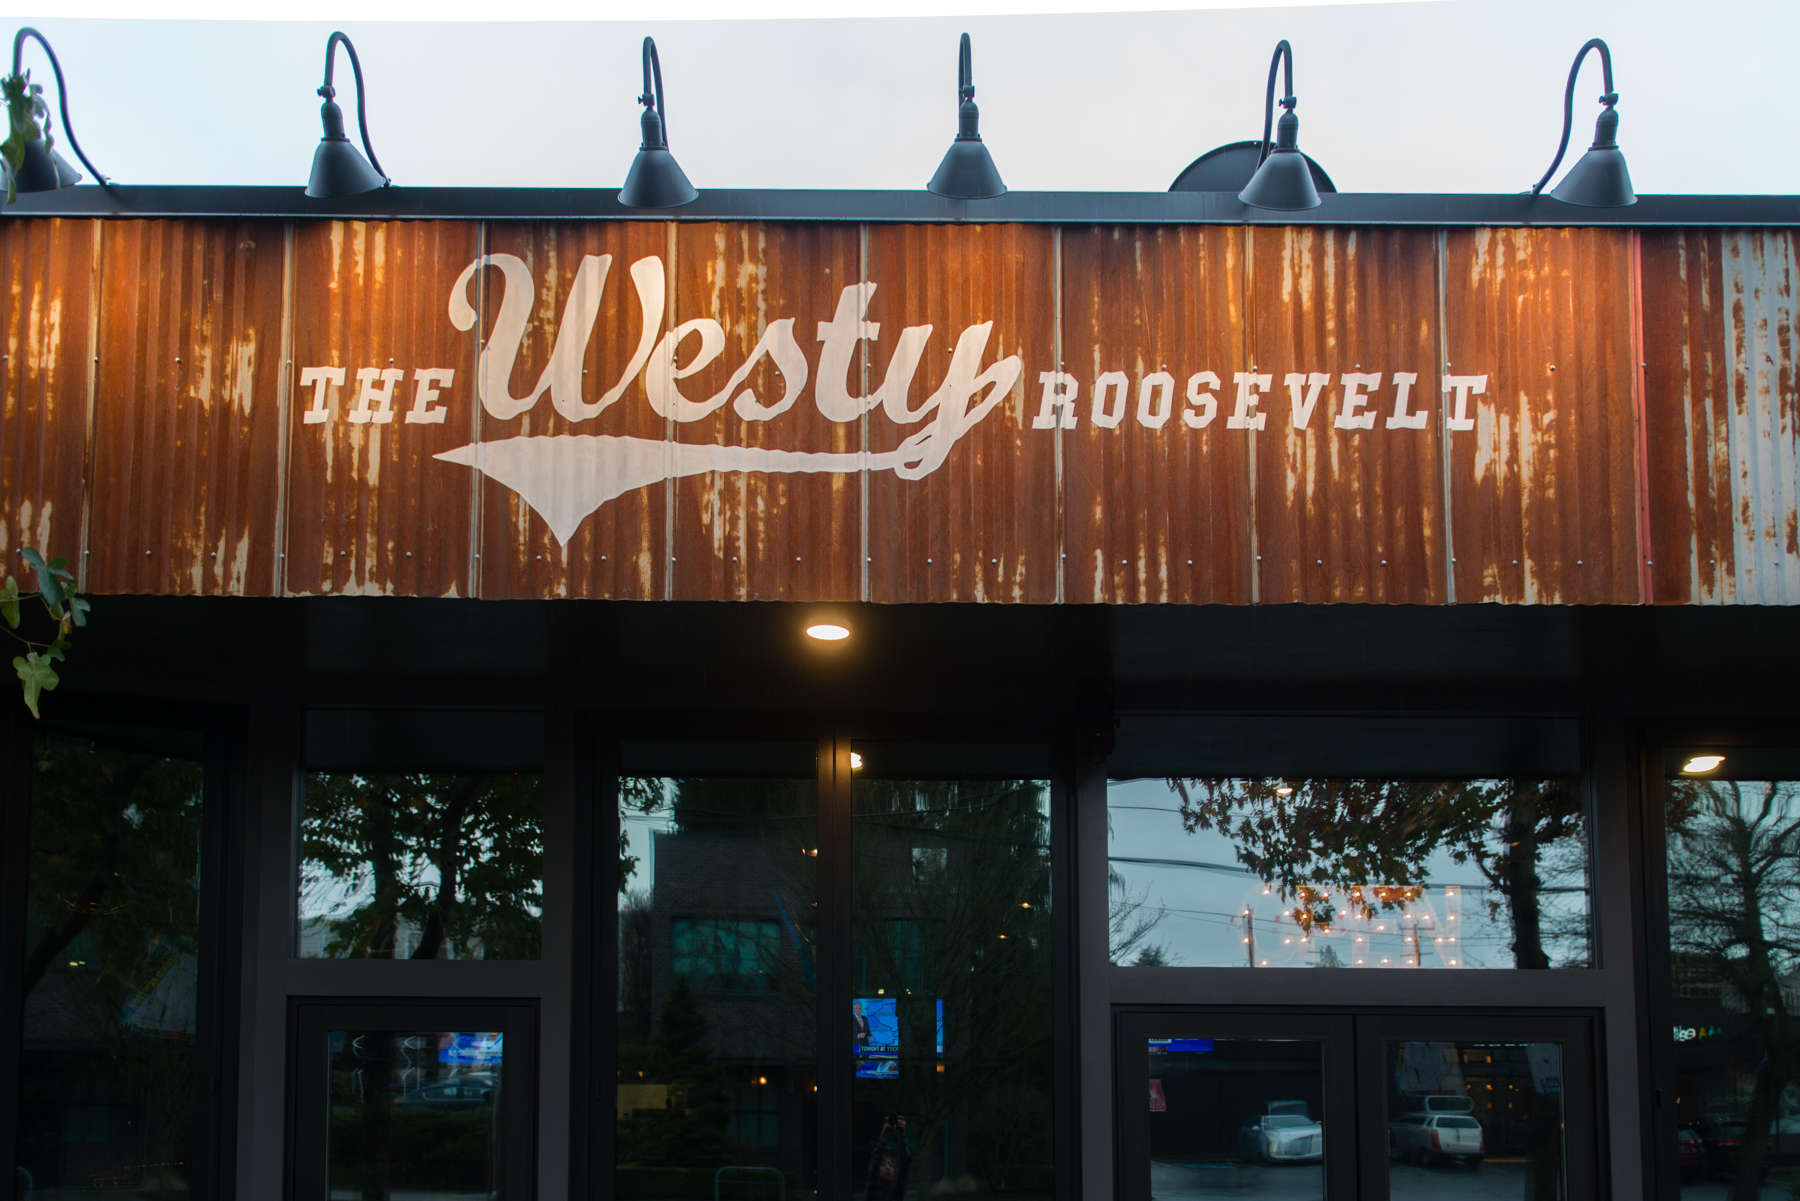 The Westy has two locations in Roosevelt and West Seattle. (Photo: Courtesy Westy)